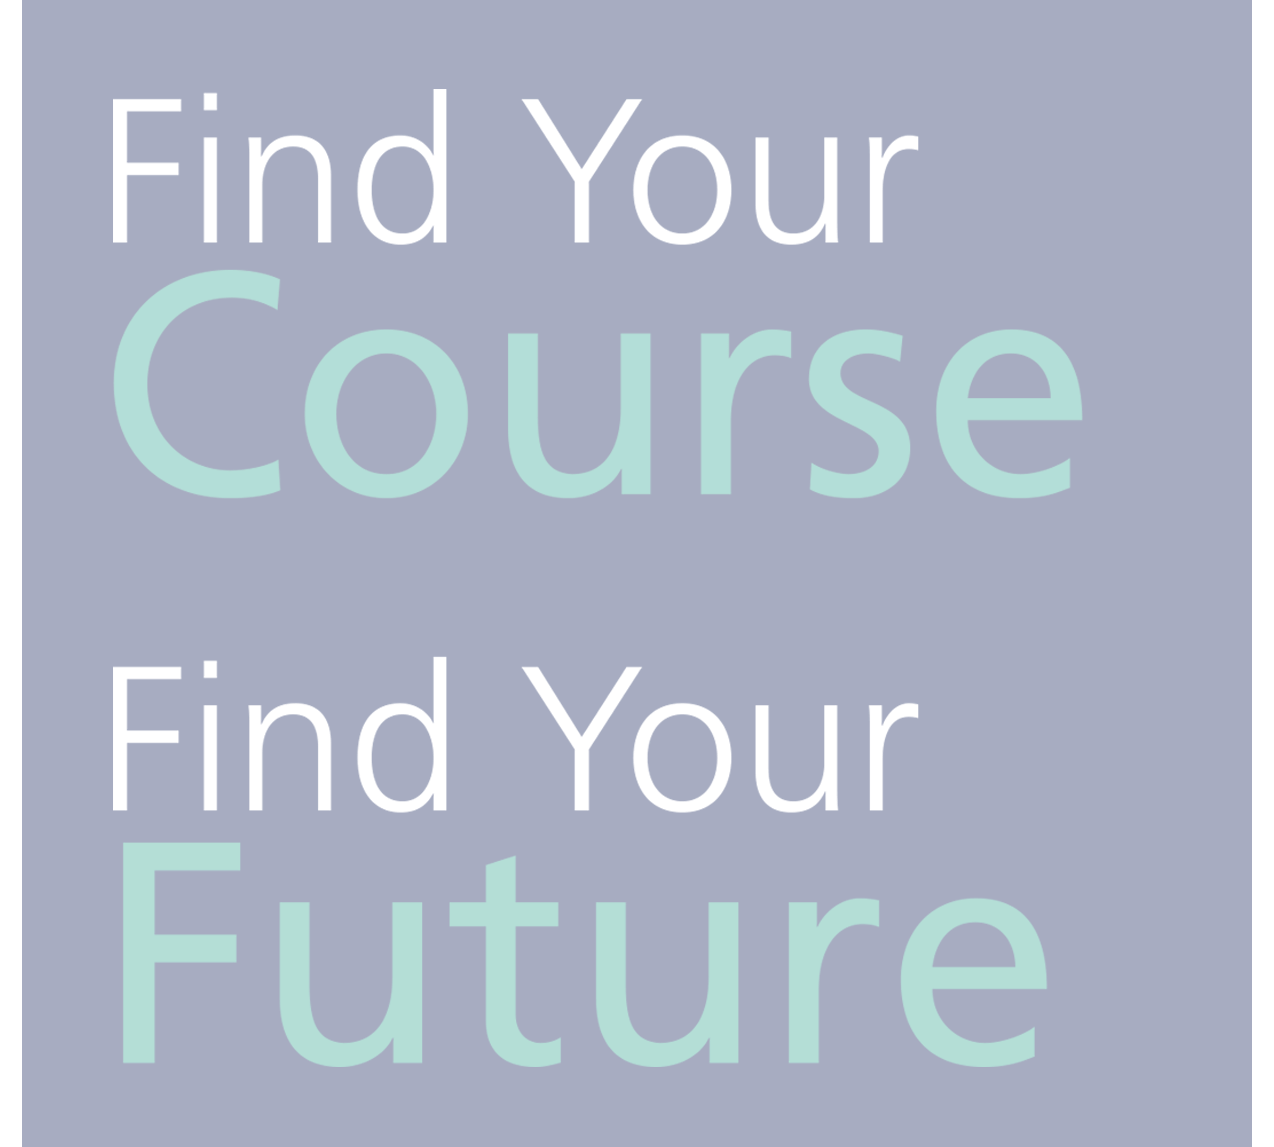 Find your course. Find your future.